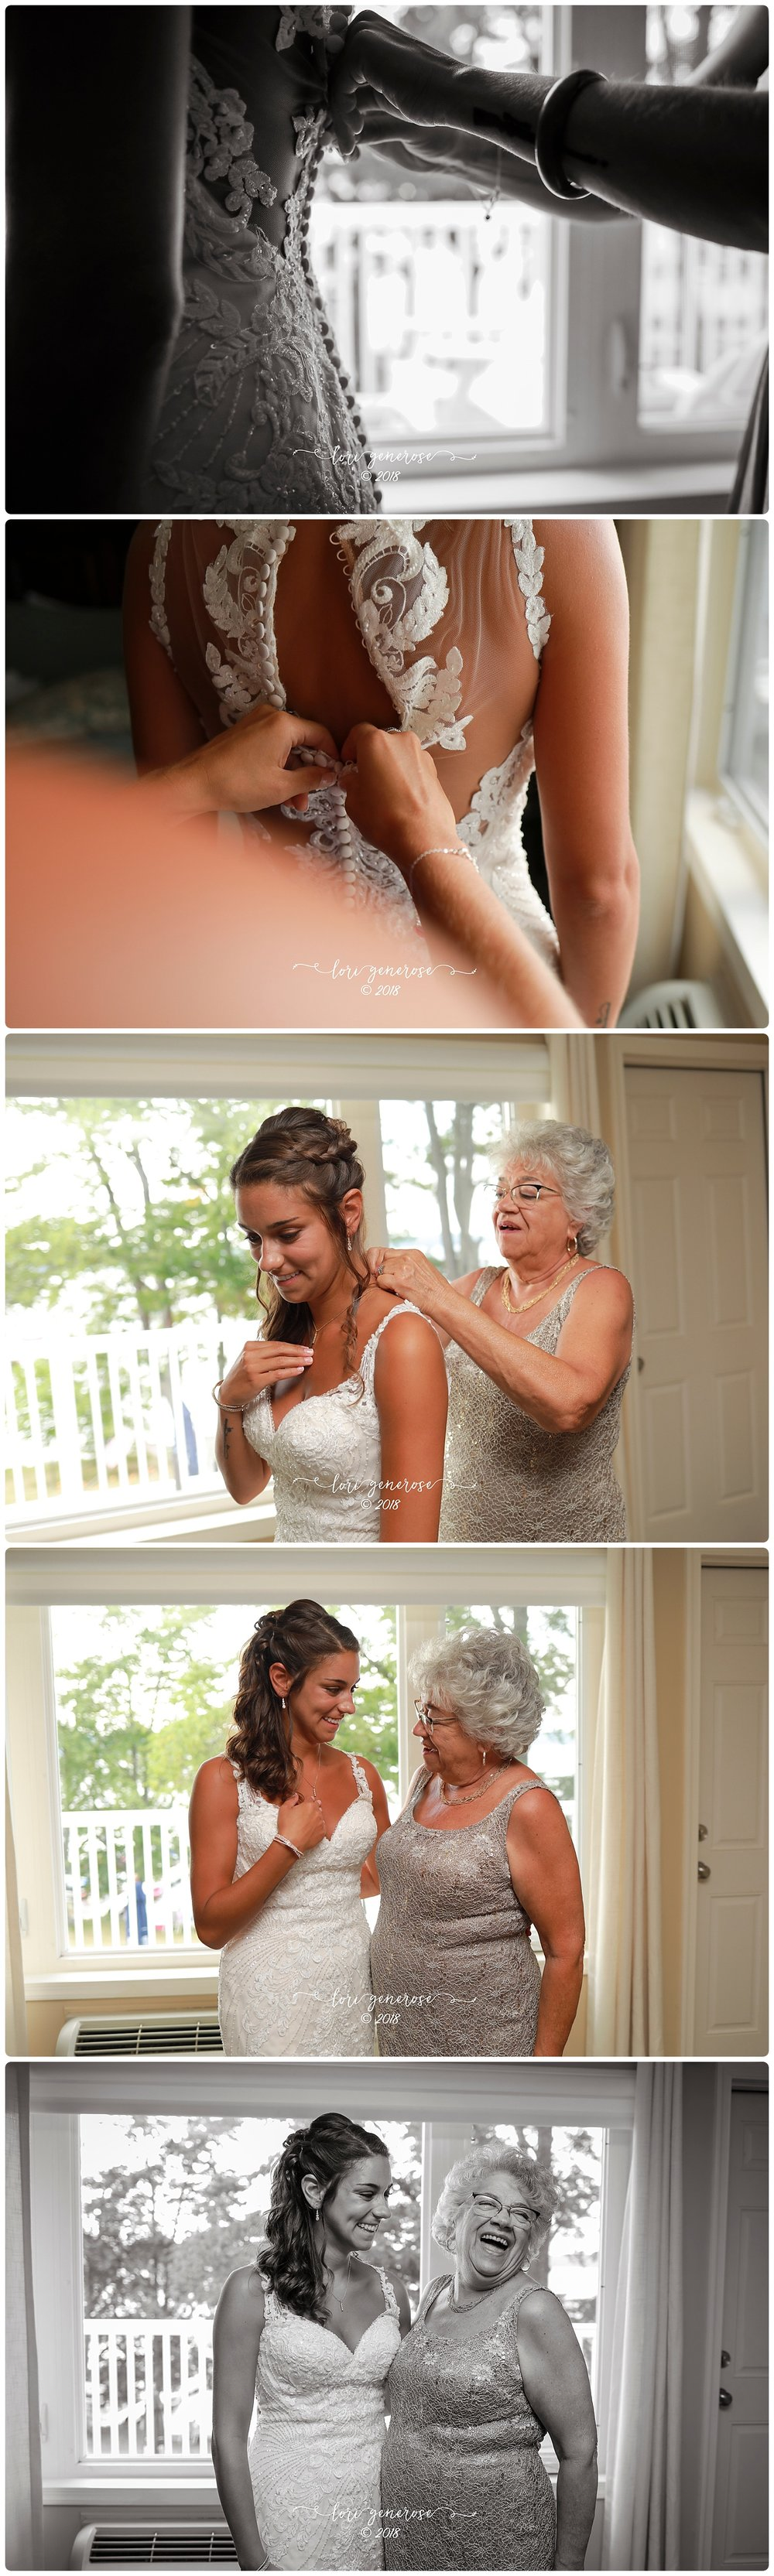 lgphotographylorigeneroseweddingatsilverbircheshawleypaweddingdressbridegettingready.jpg